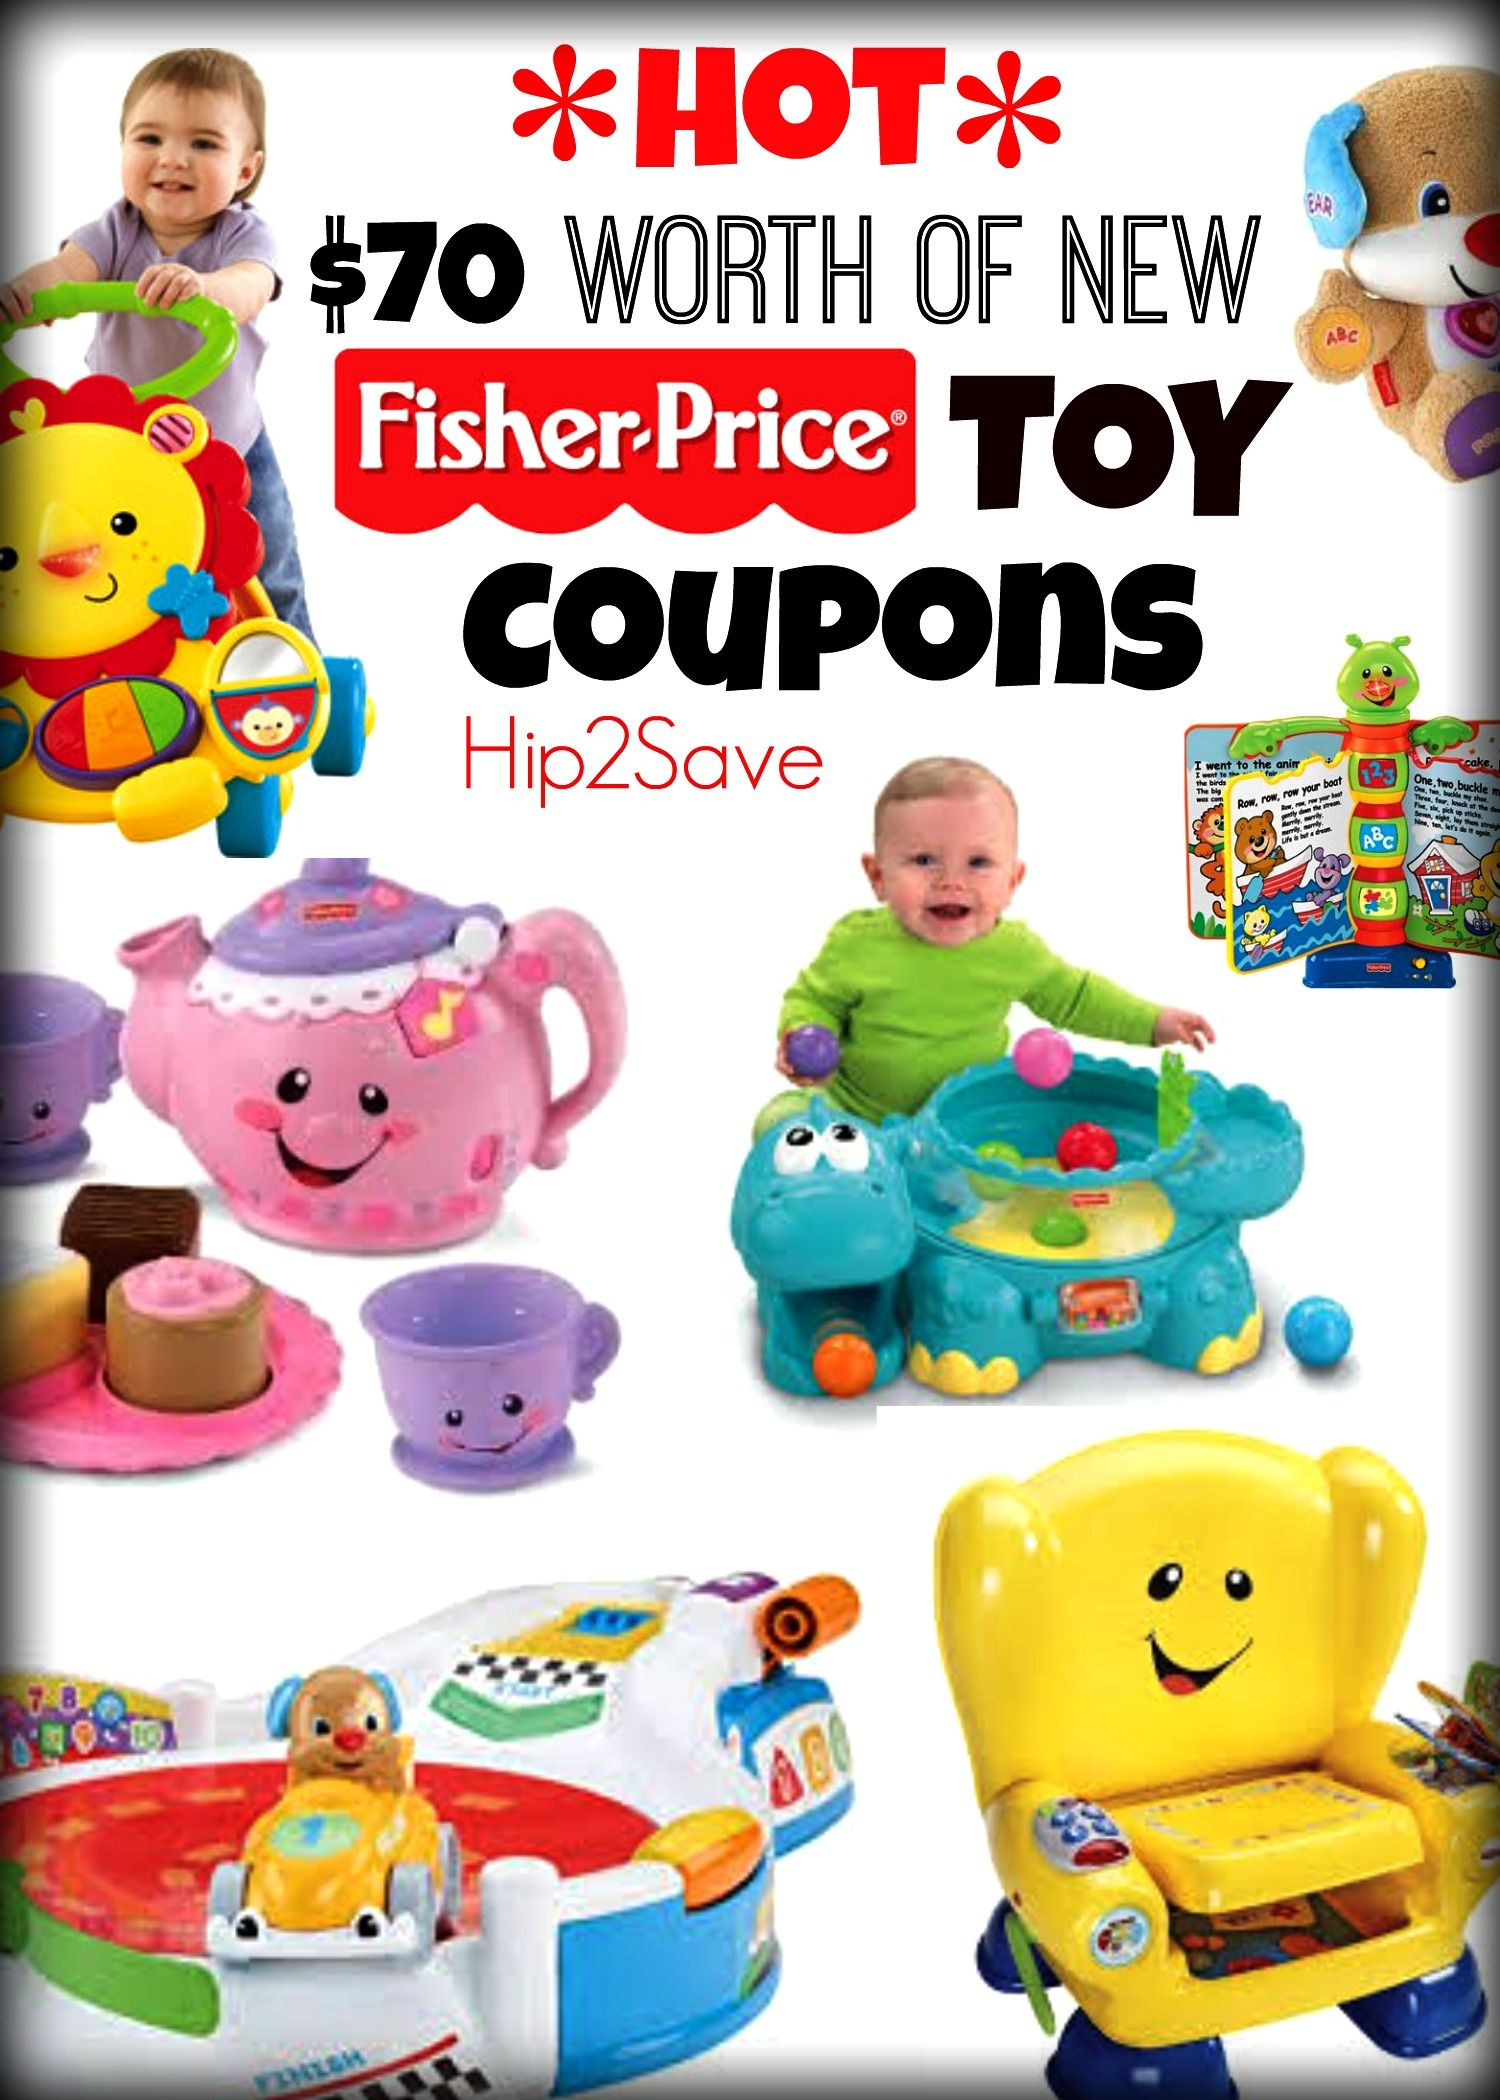 Hot 70 Worth Of New Fisher Price Toy Coupons Print Them Now Before They Re Gone Fisher Price Toys Baby Shopping List Print Coupons